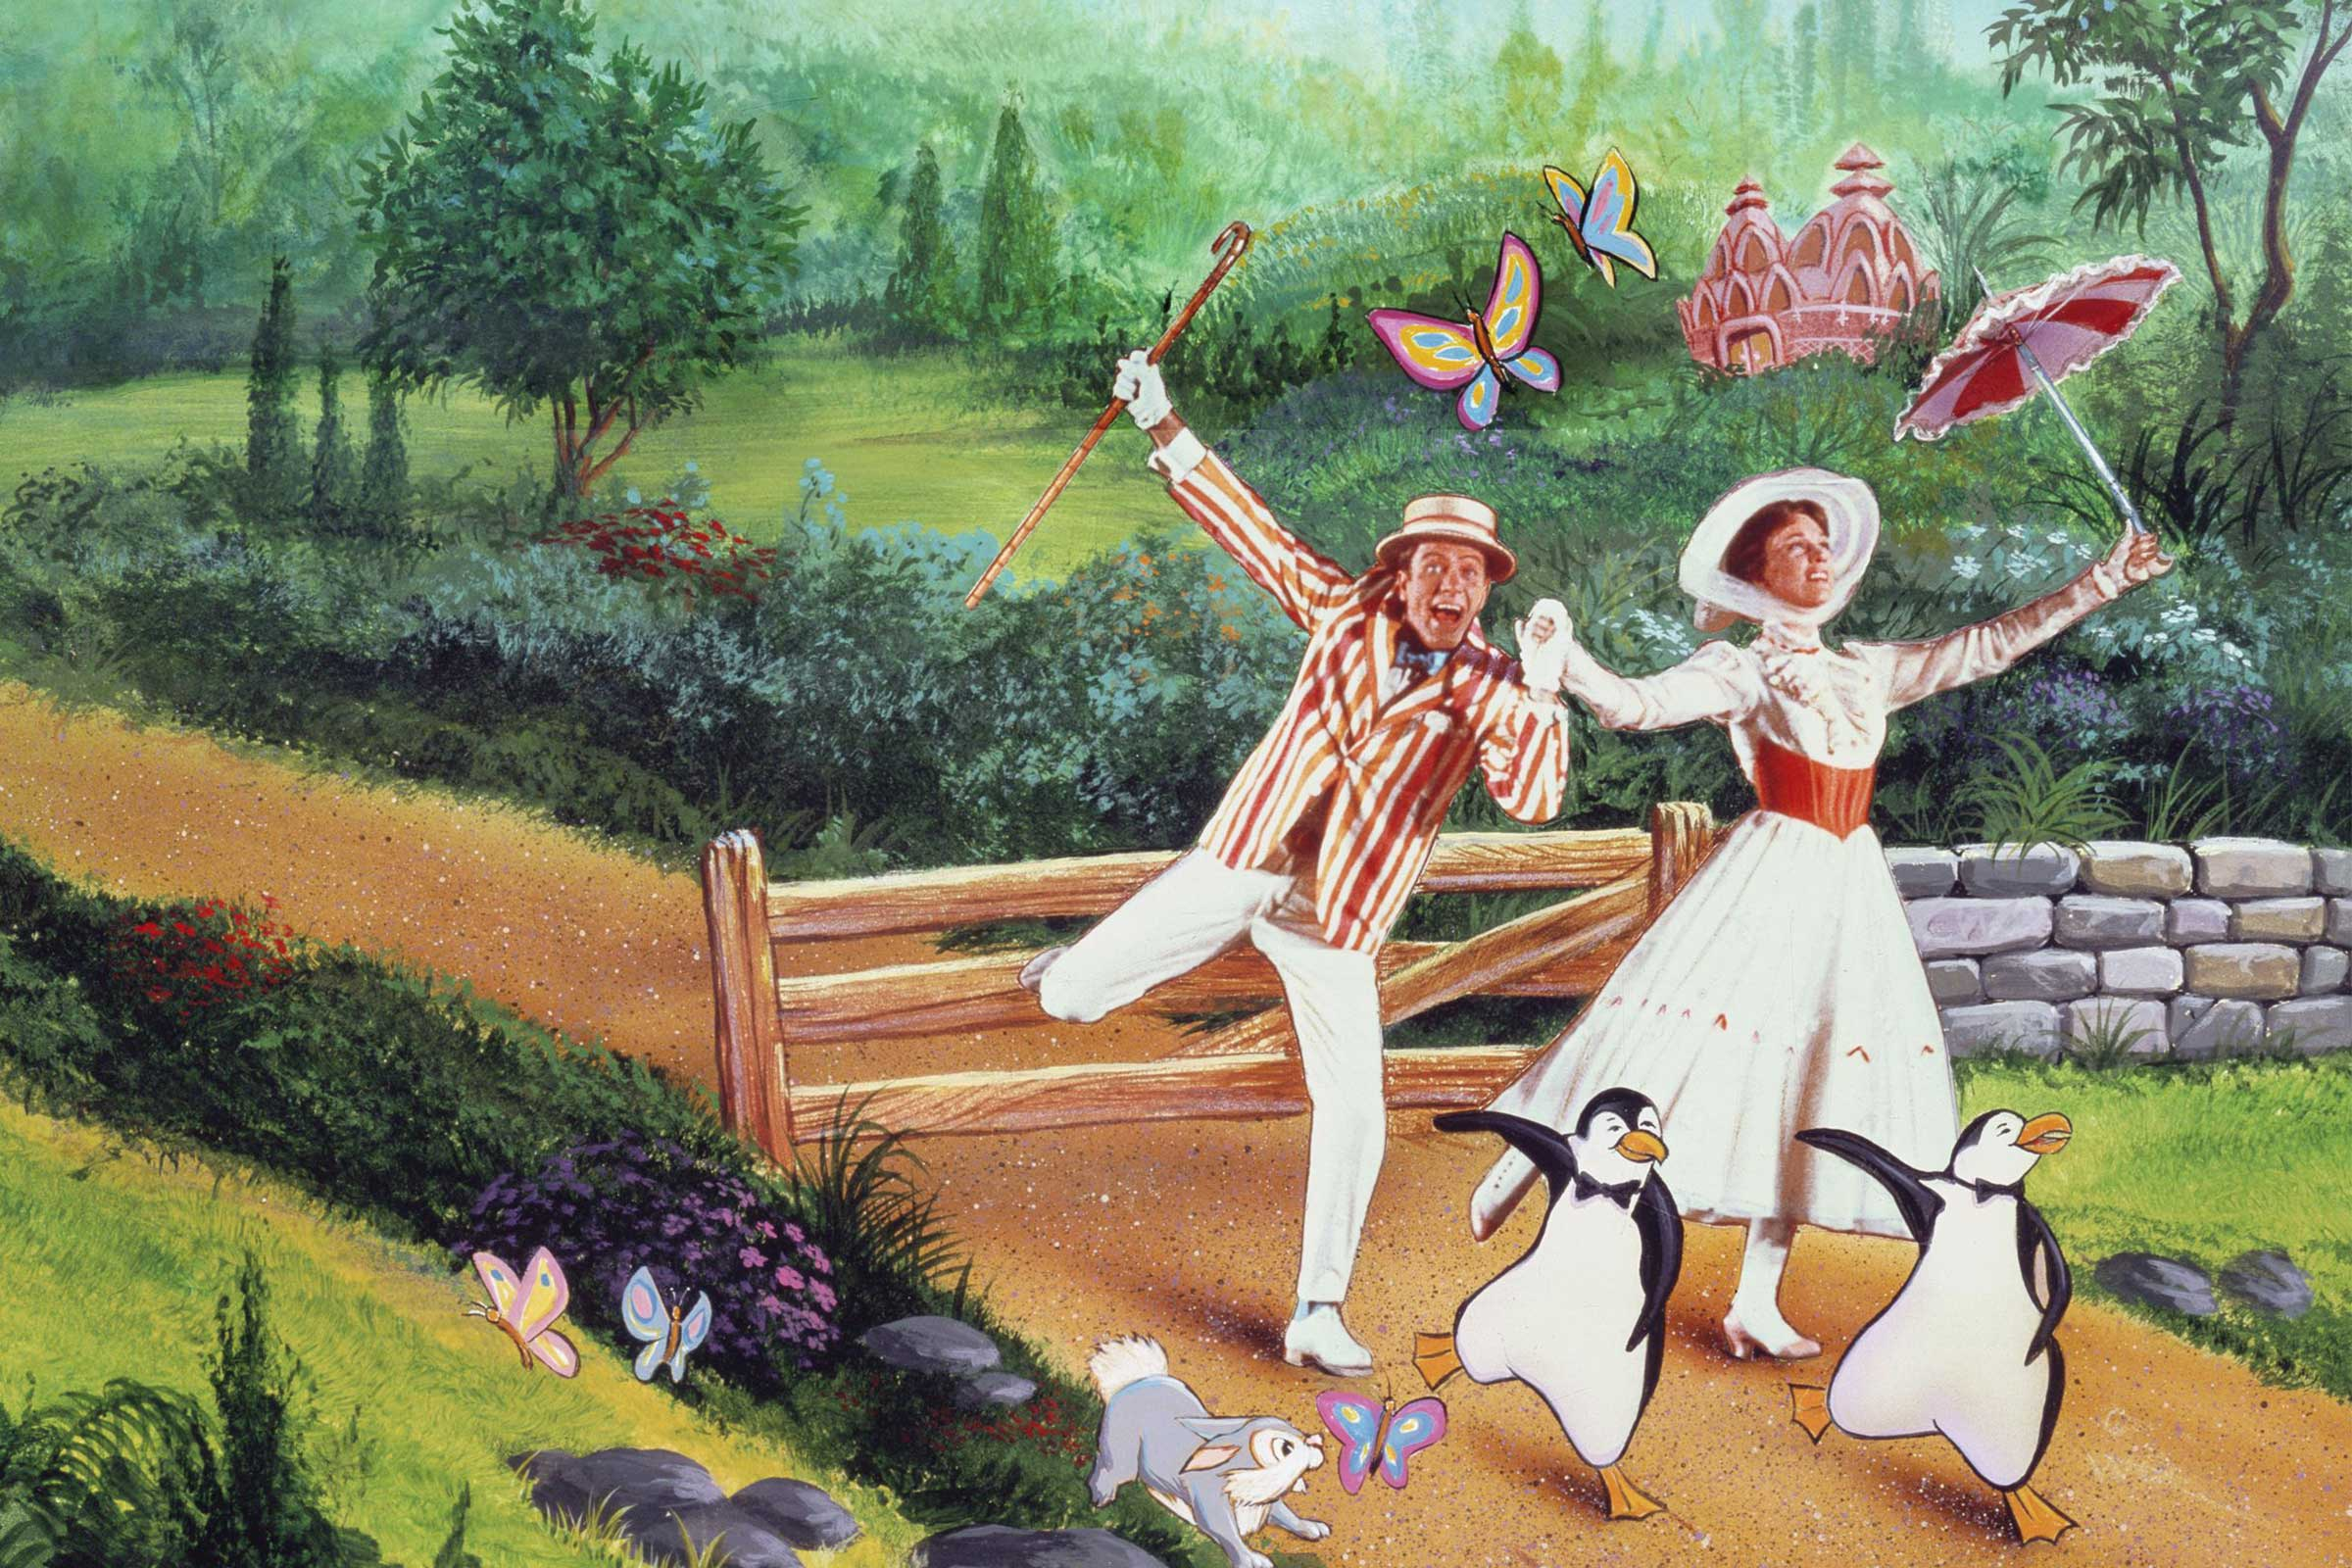 Bert (Dick Van Dyke) and Mary Poppins (Julie Andrews) go dancing with penguins during the animated interlude in Mary Poppins (1964)